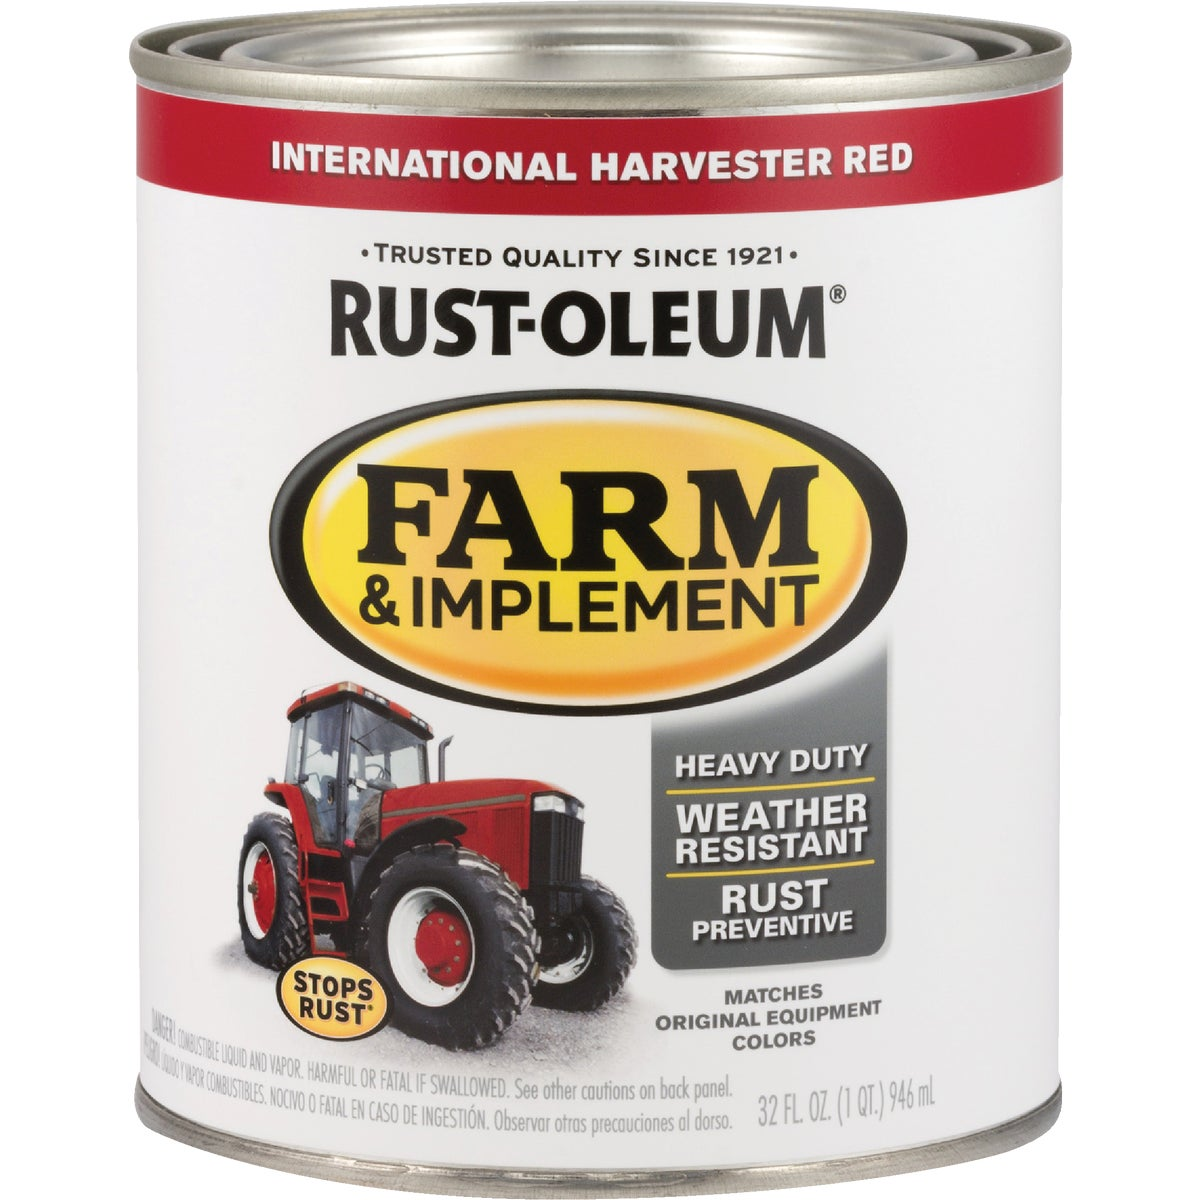 INTL RED IMPLEMNT ENAMEL - 7466-502 by Rustoleum